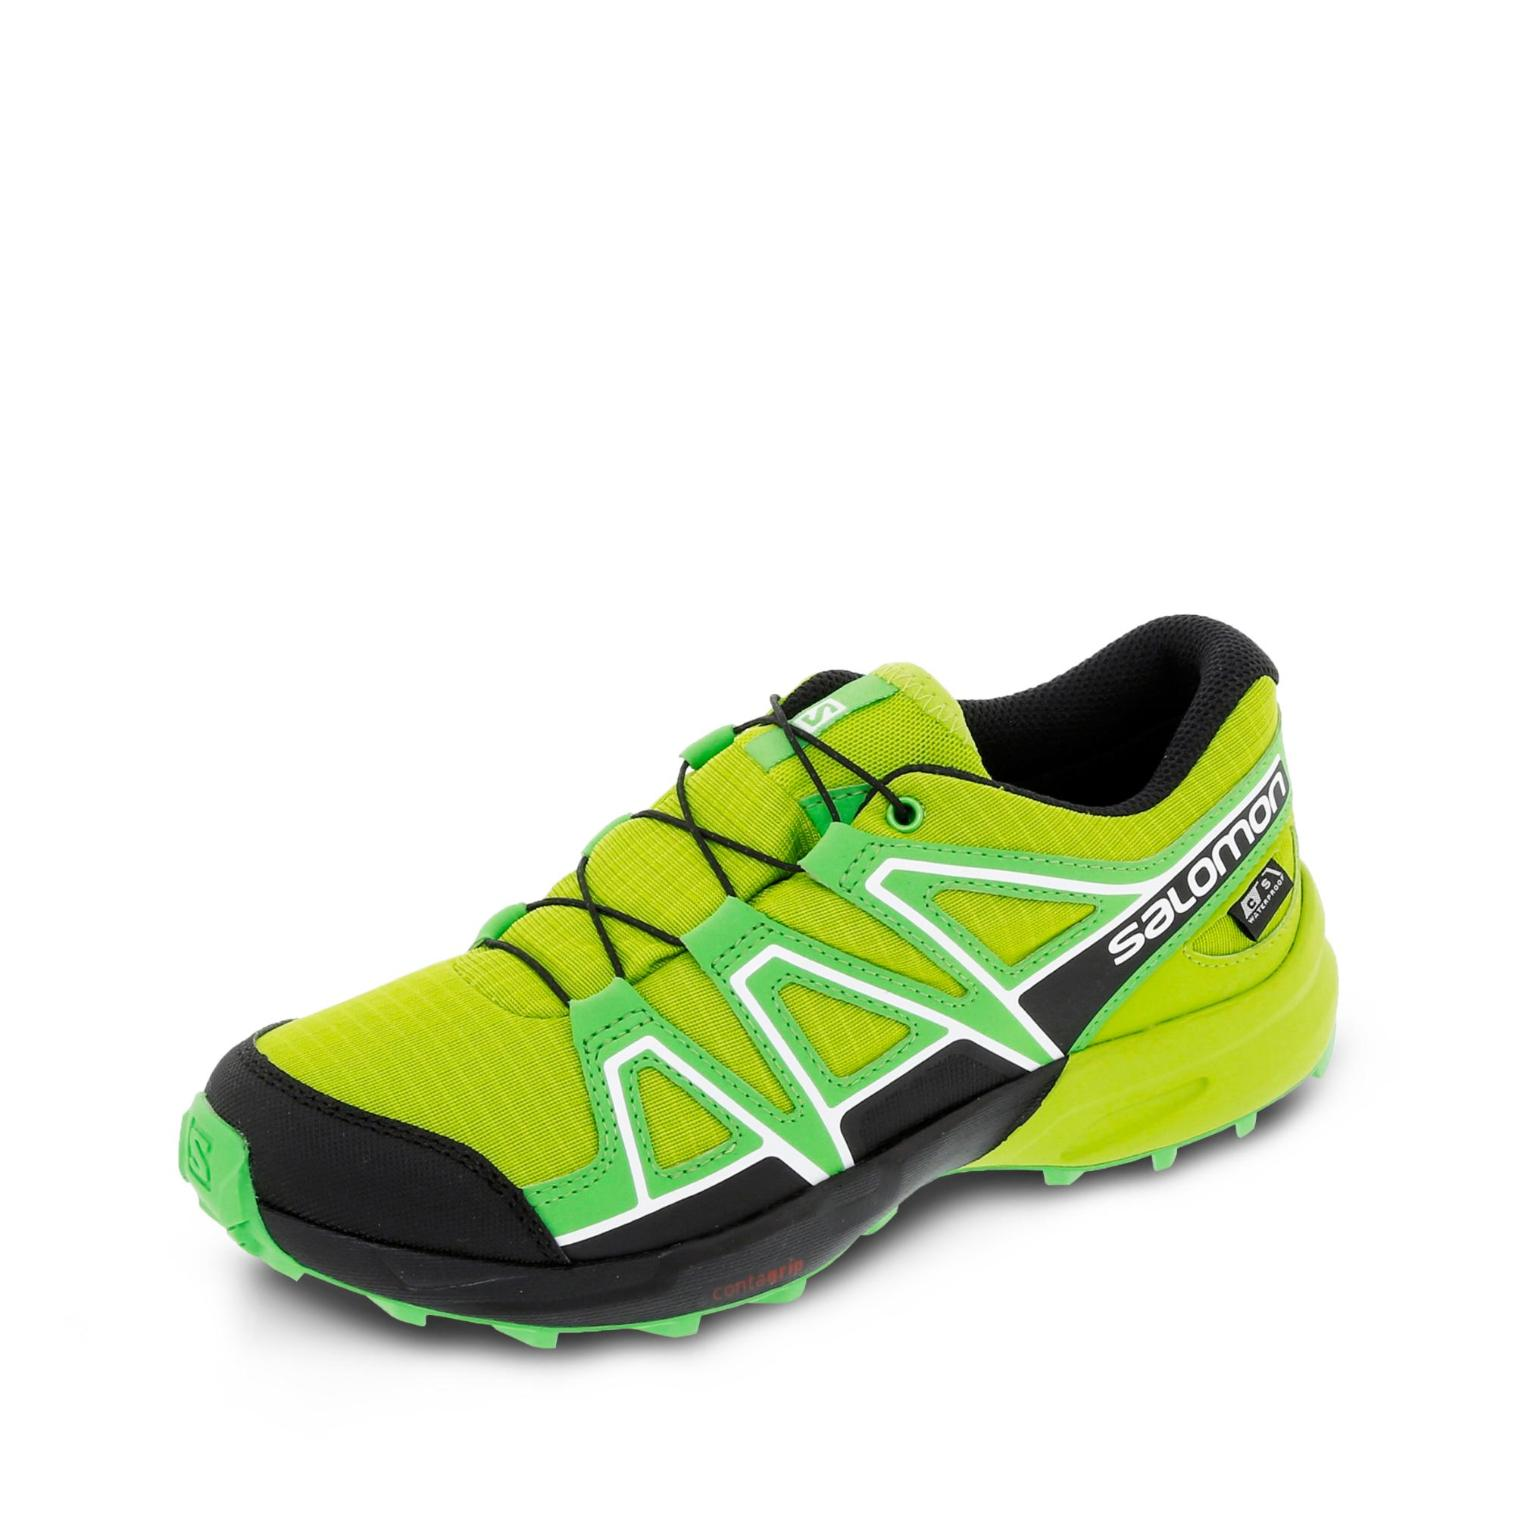 Salomon Speedcross CSWP Outdoorschuh - neongrün/schwarz